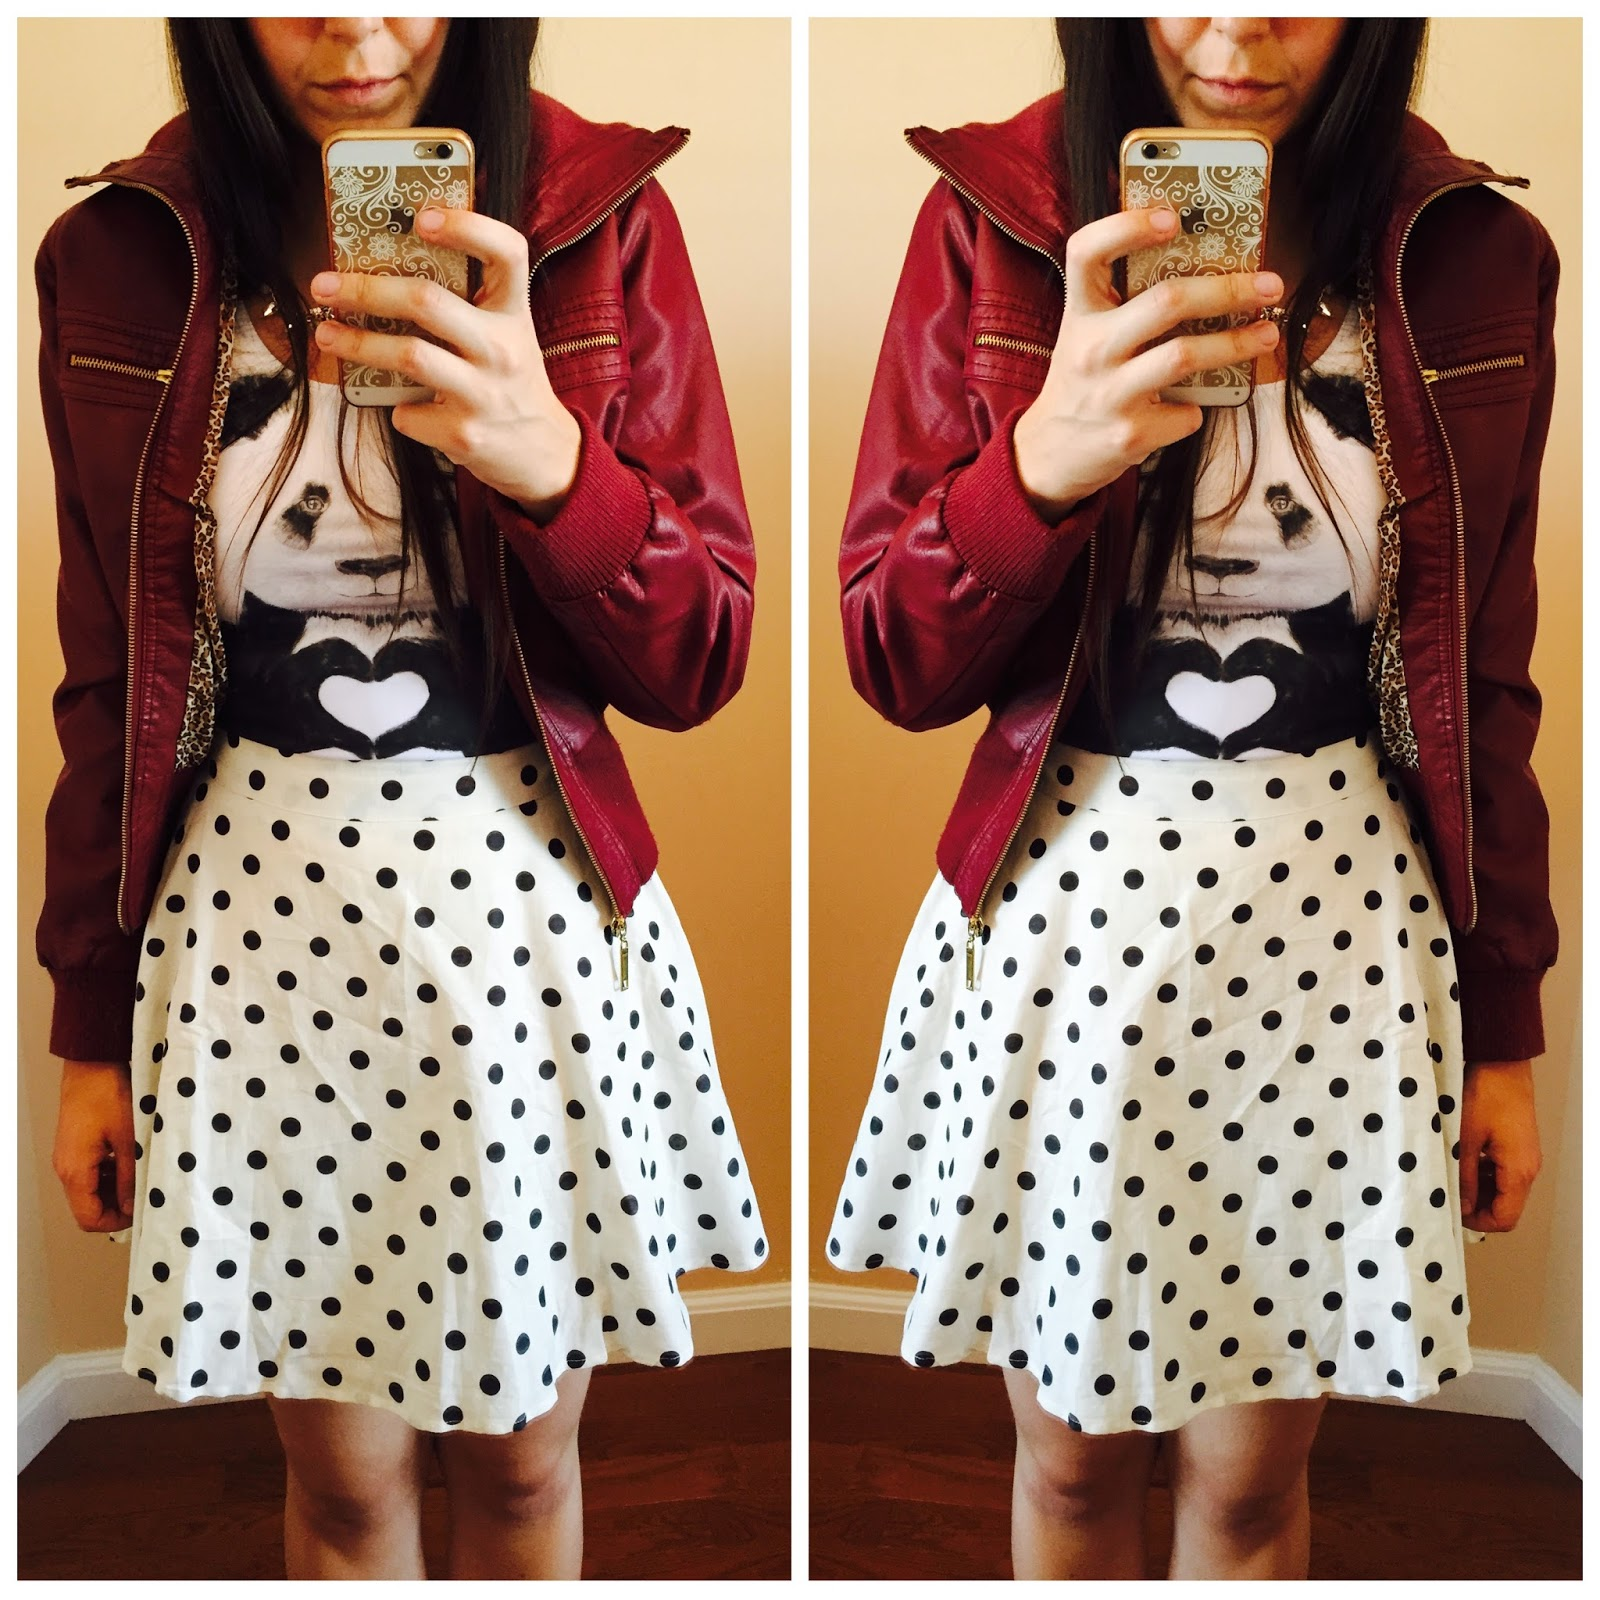 burgundy leather jacket, burgundy jacket outfit, polka dot skirt, polka dot skirt outfit, panda tank top,